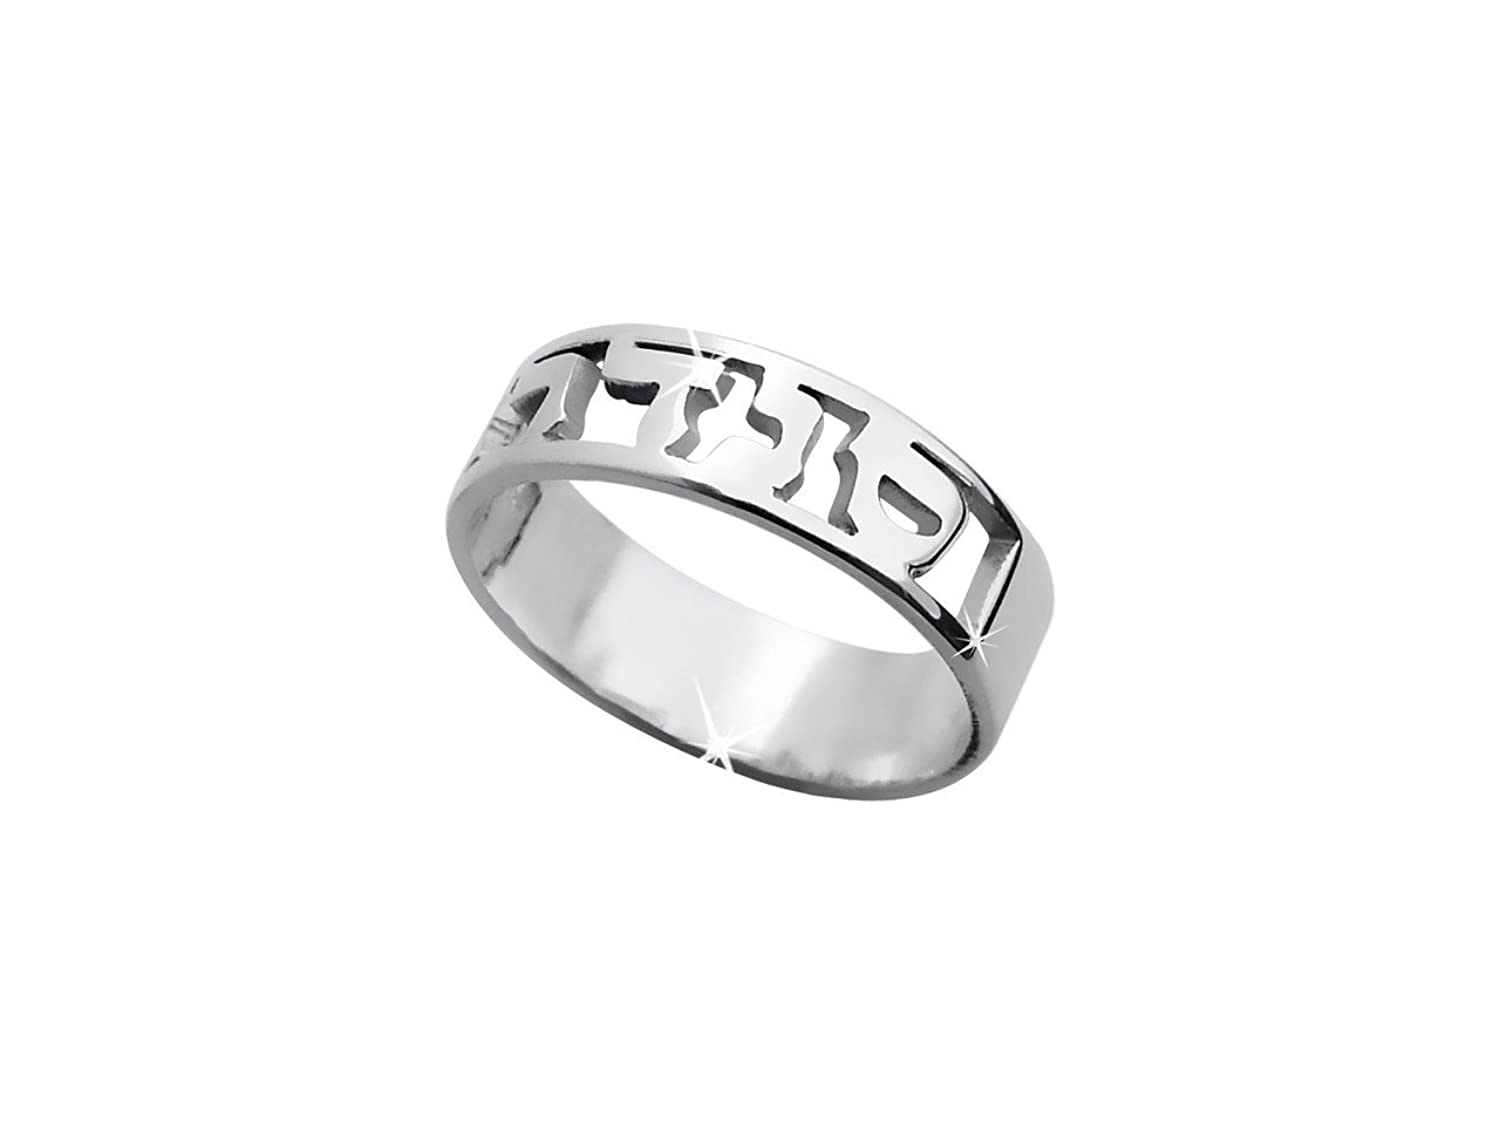 LAOFU Sterling Silver Hebrew Name Ring